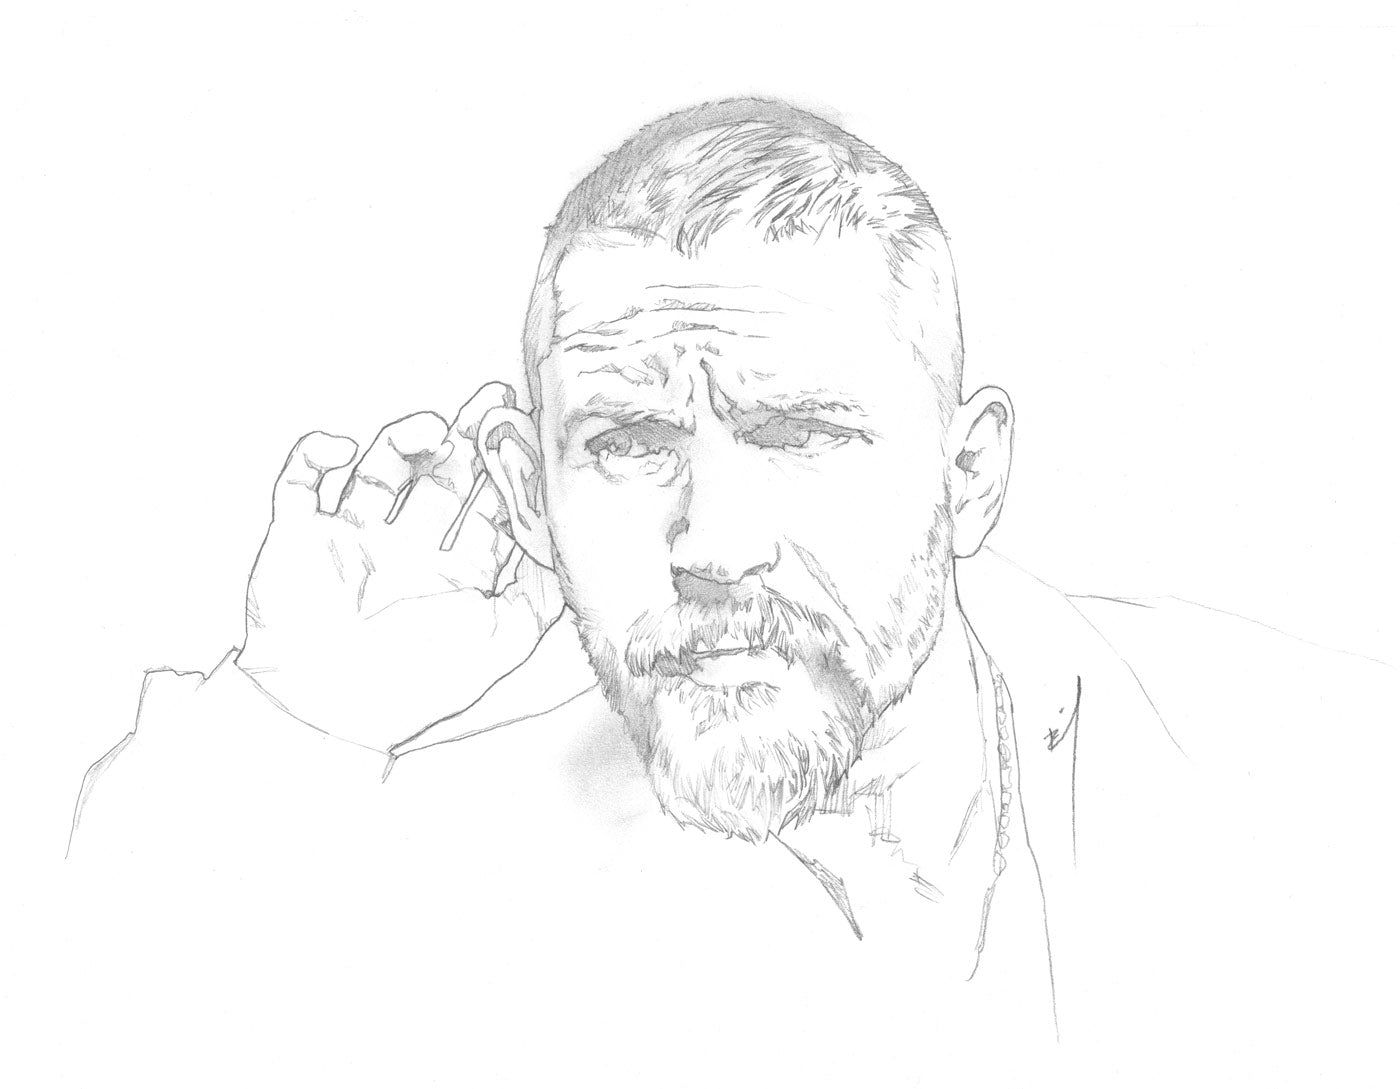 Tom hardy listening carefully pencil sketch brandon bird